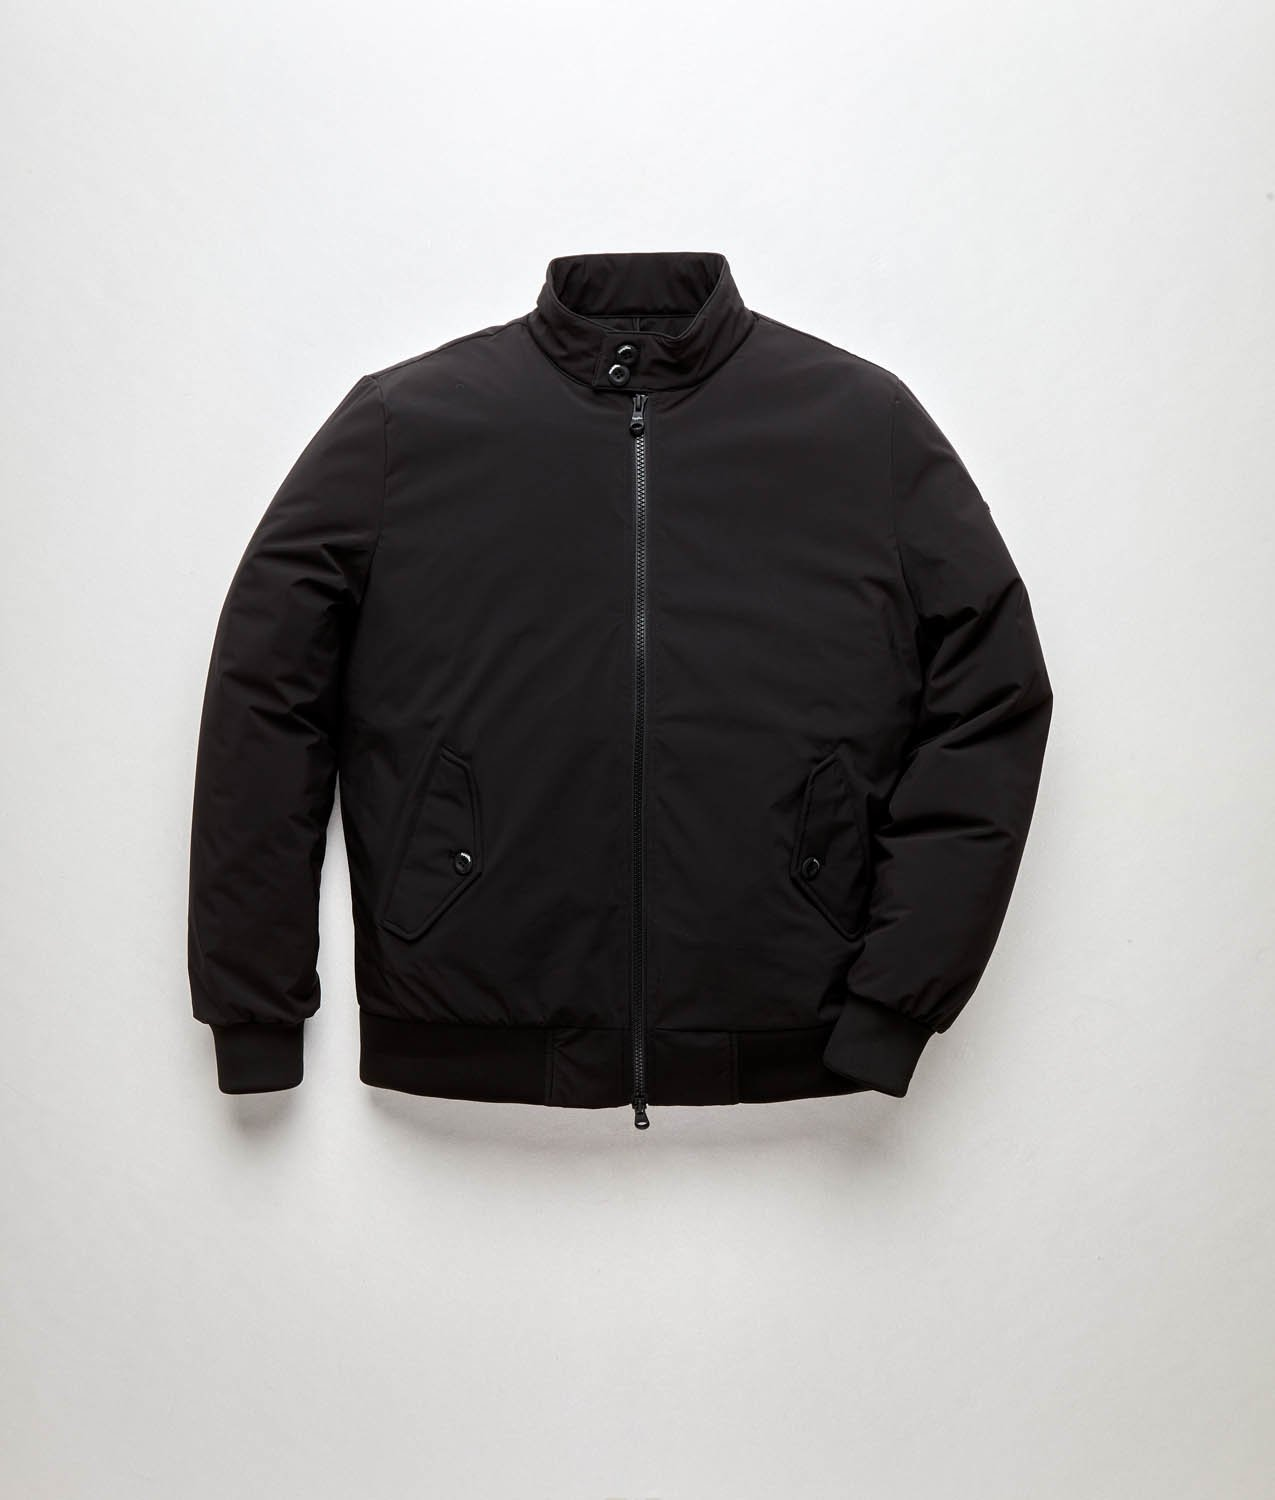 WINTER WILSHIRE JACKET